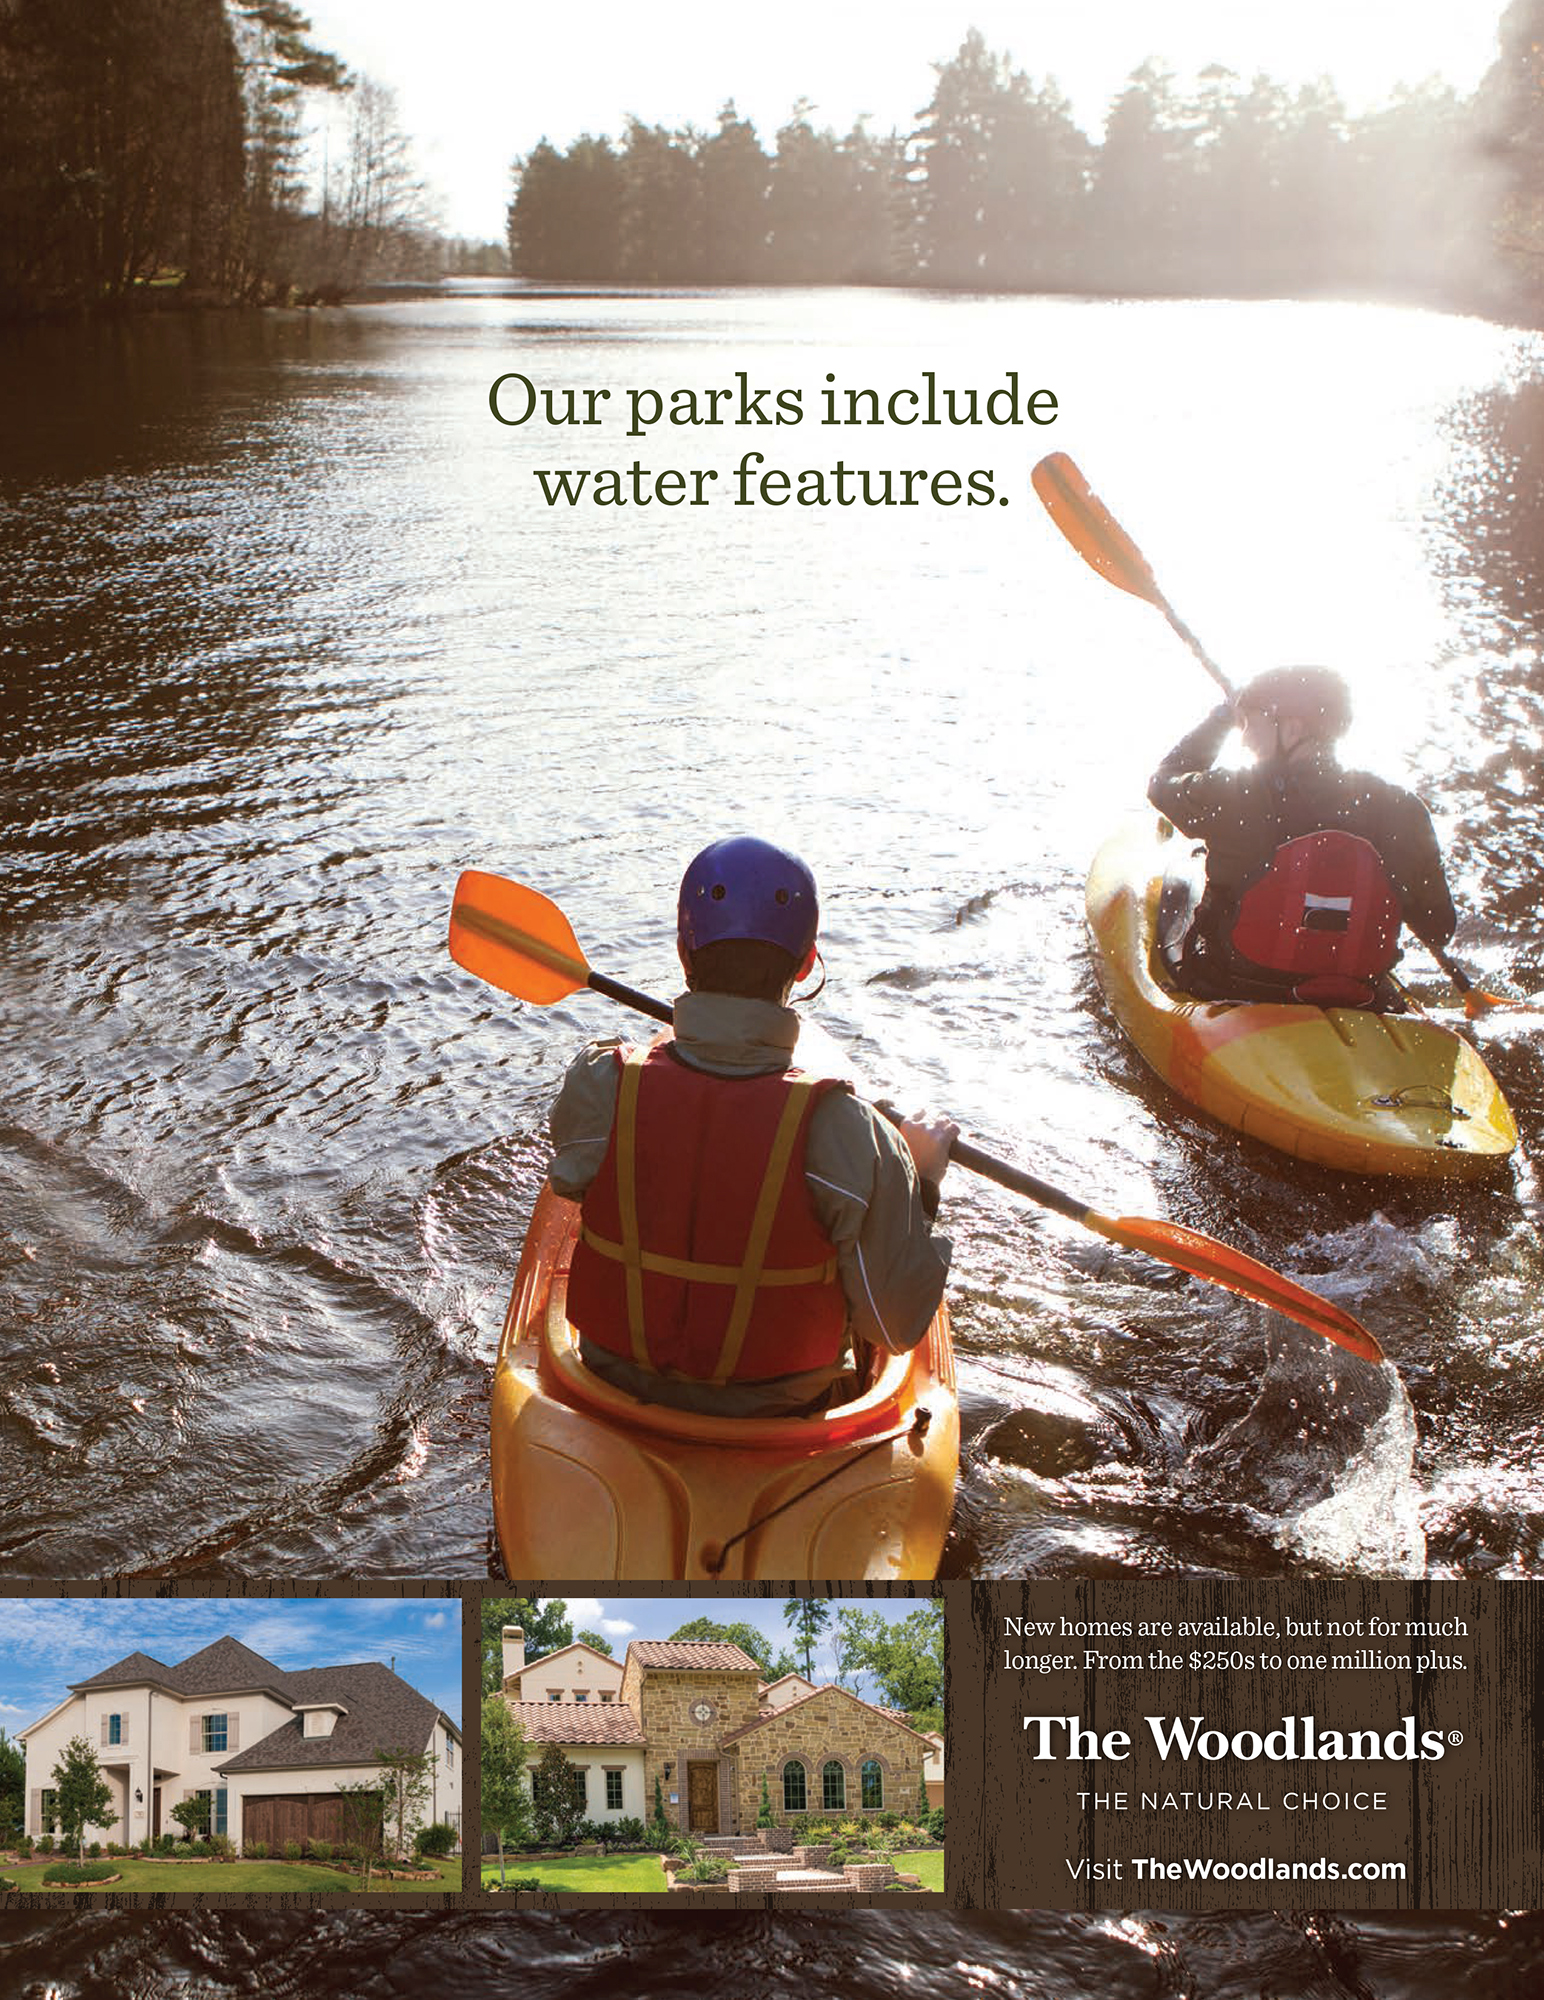 Woodland_Residential_NaturalChoice_Ad-4.jpg